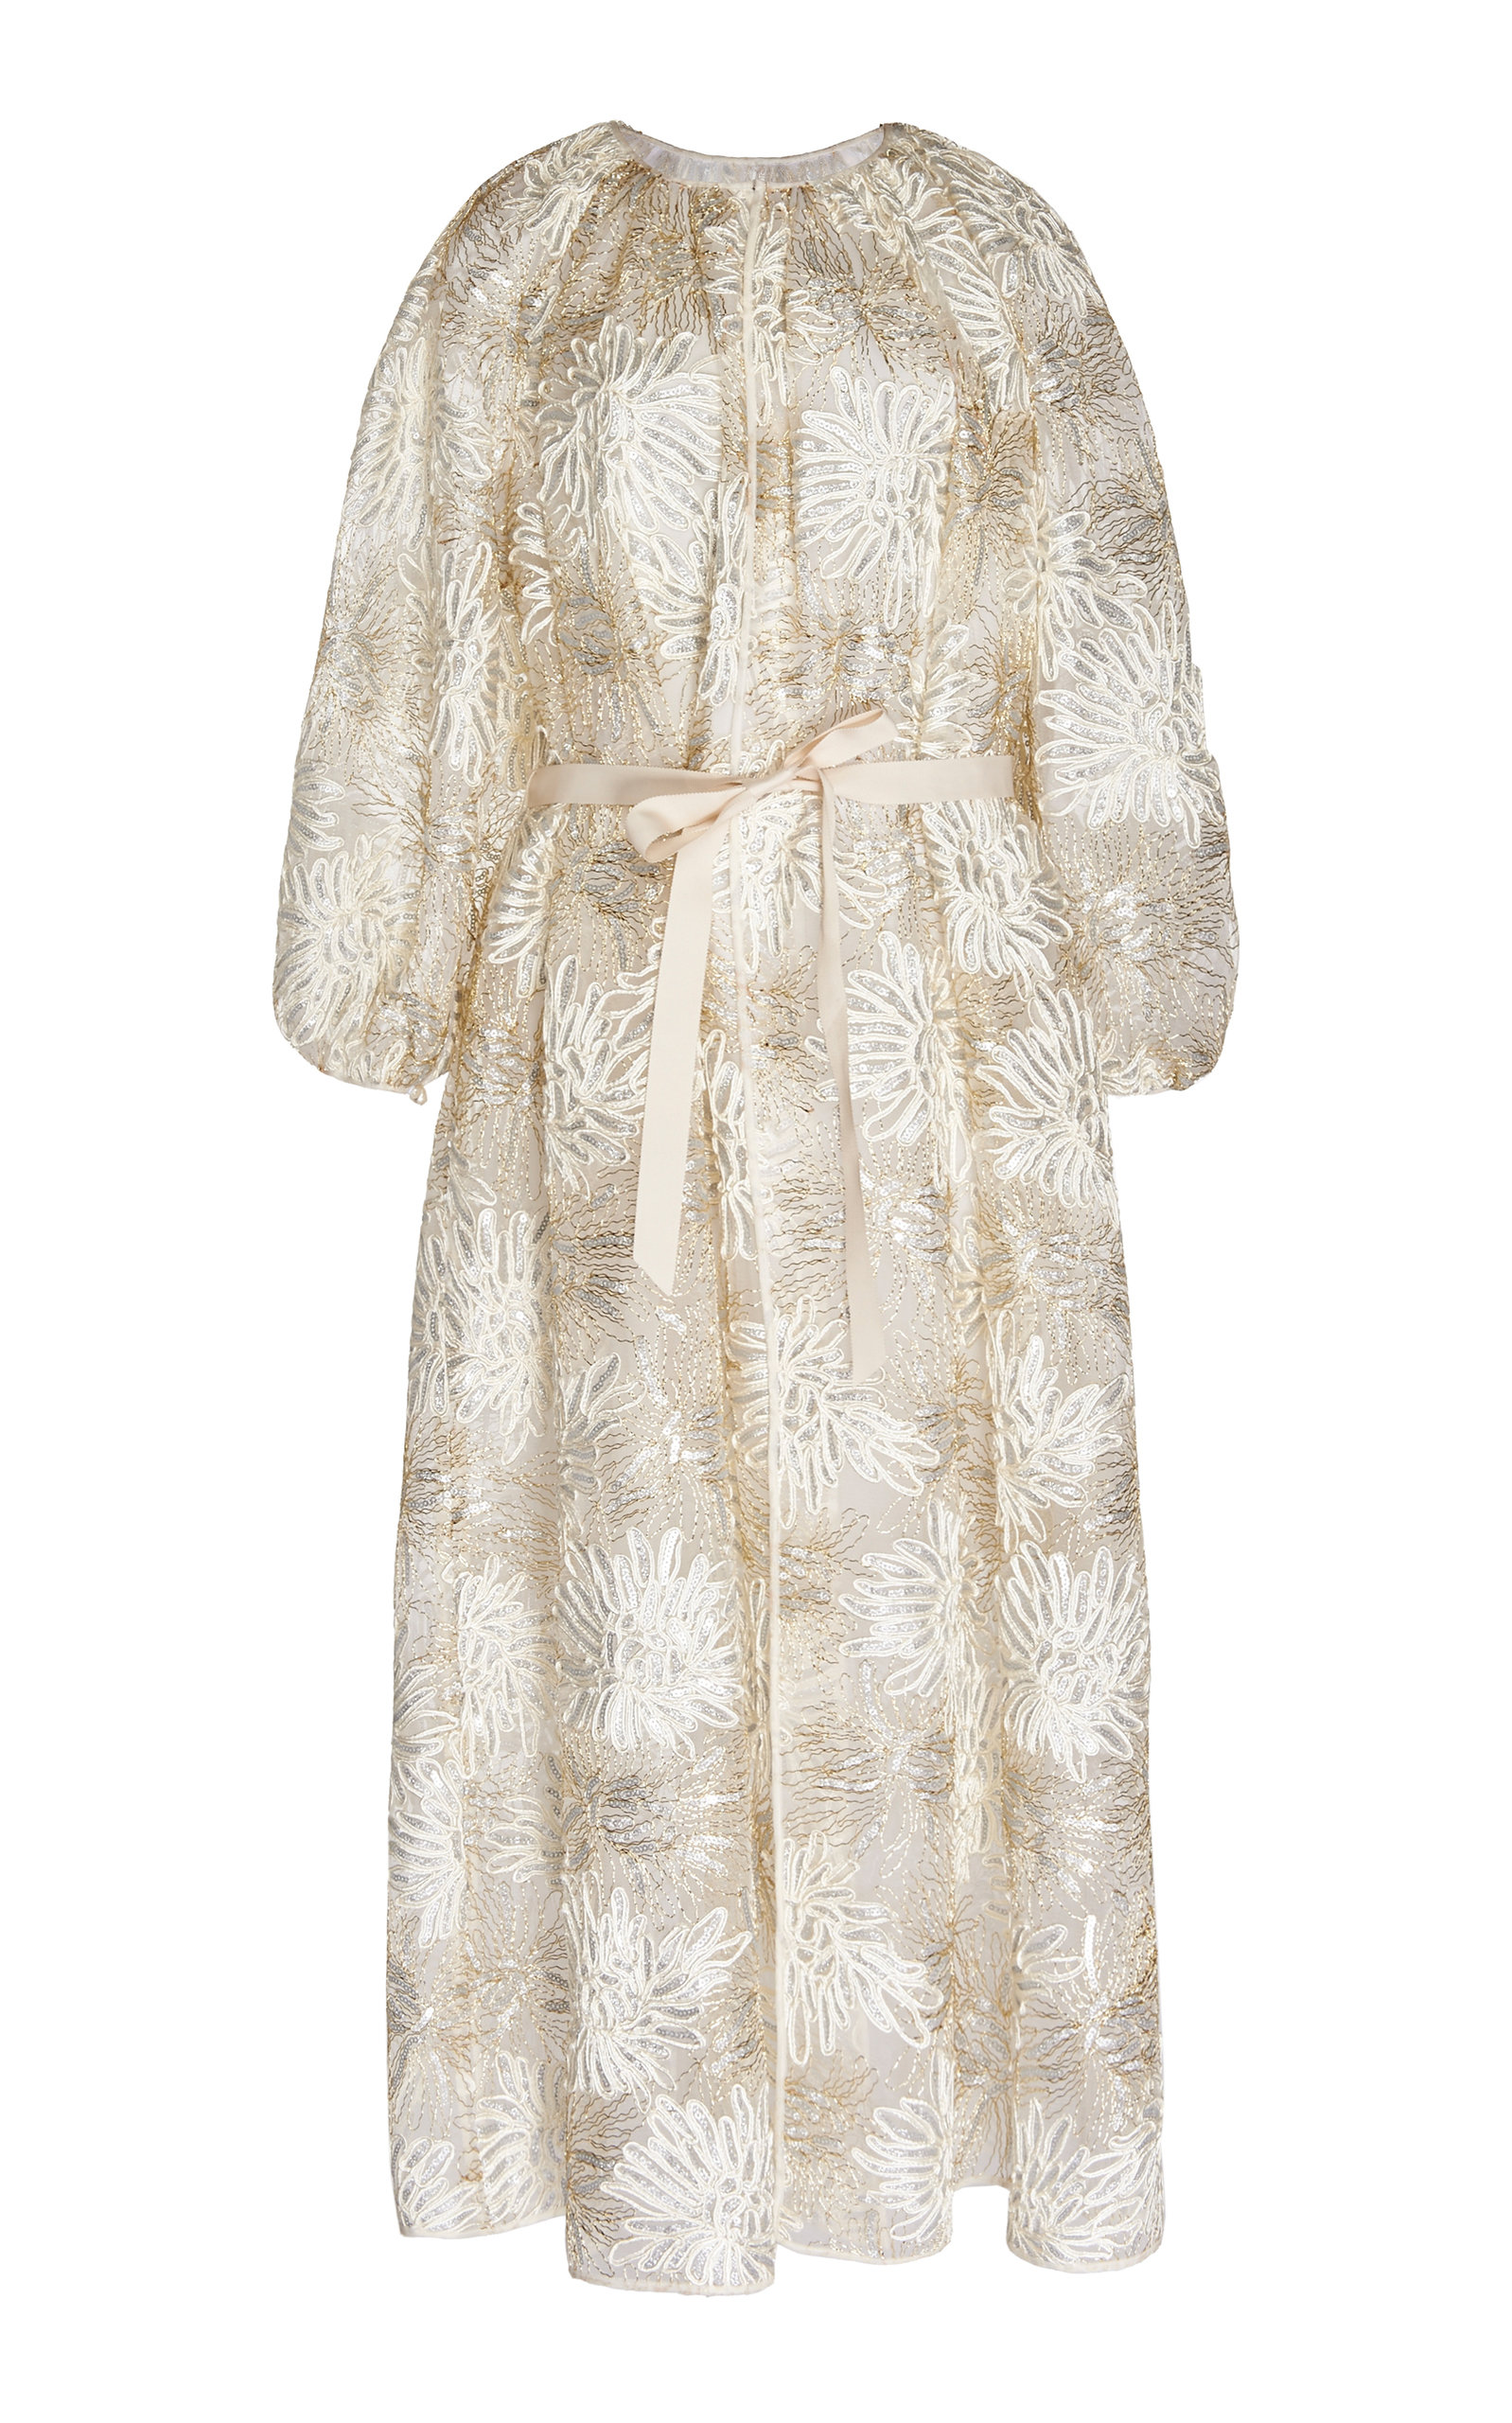 Luna Long Sleeve Embroidered Lace Maxi Dress